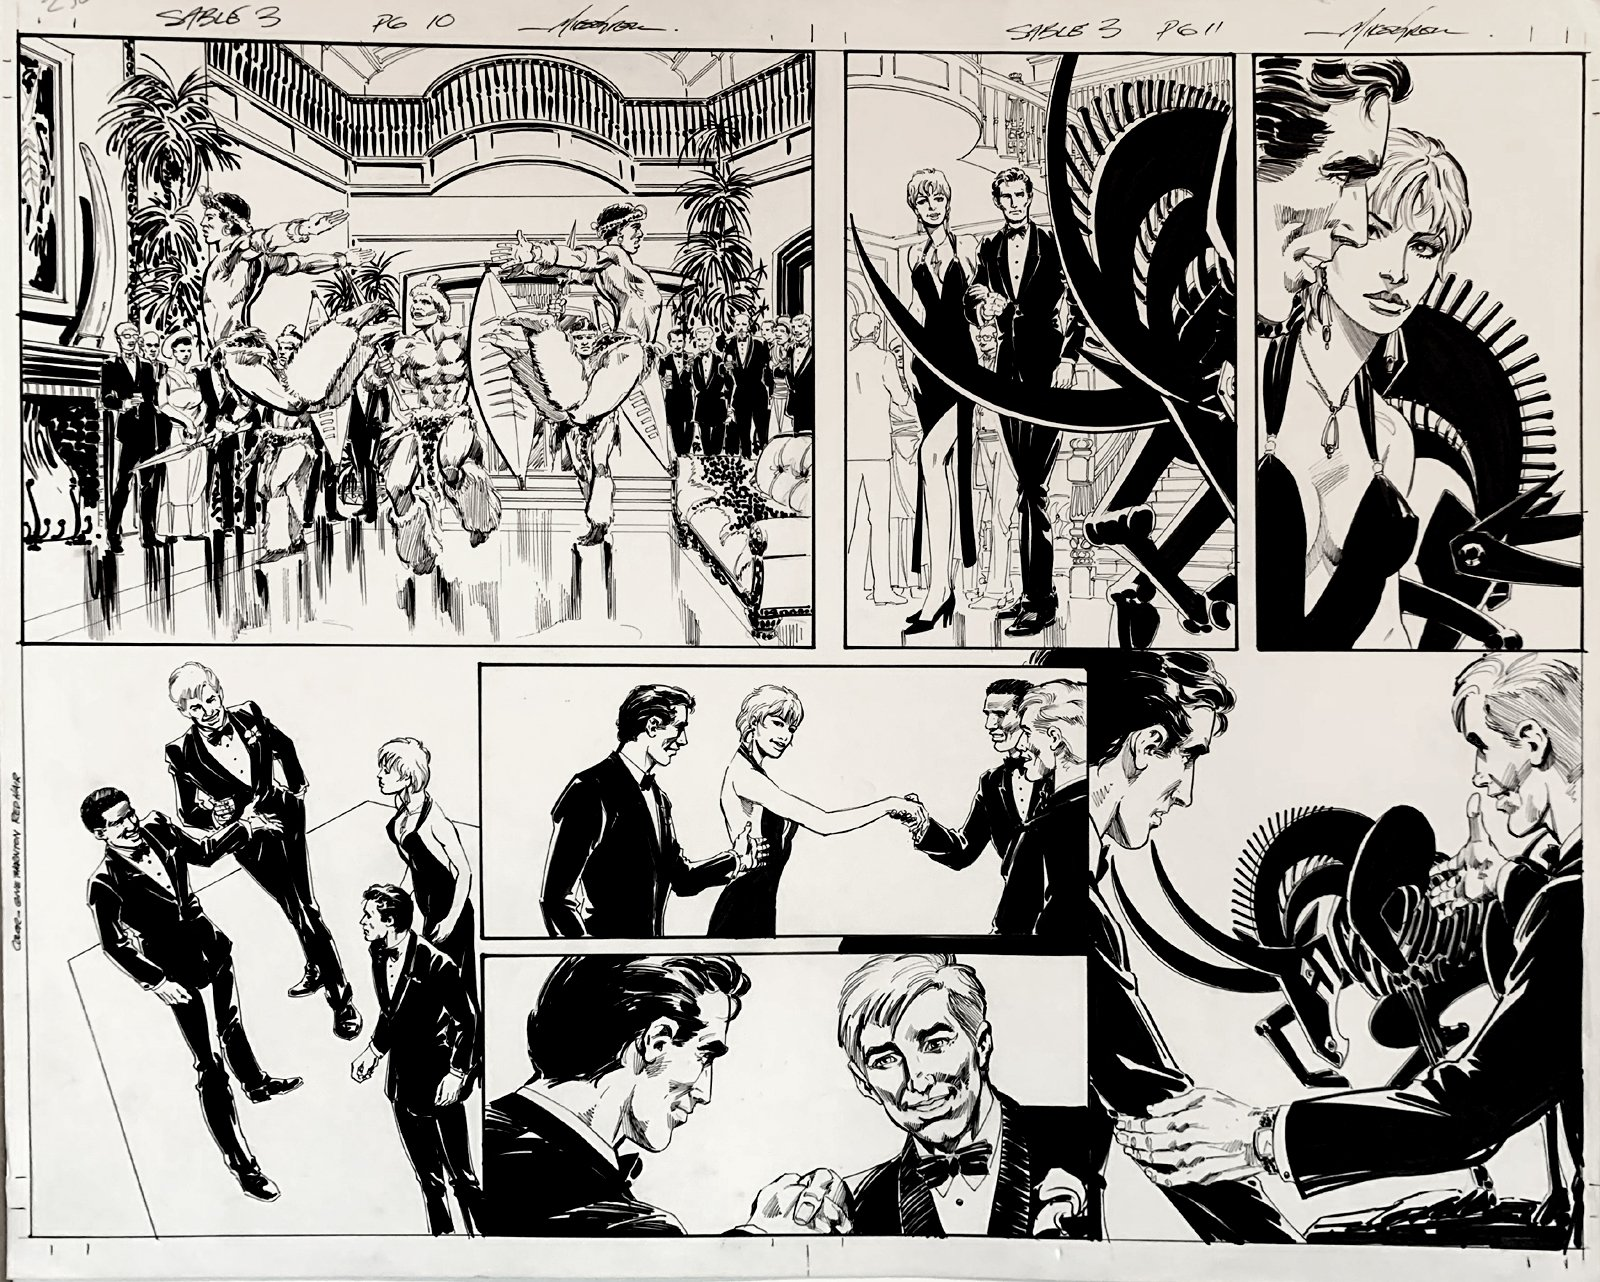 Jon Sable, Freelance: Bloodtrail #3 p 10-11 Huge Double Page Spread On 1 Large Board! (2005)